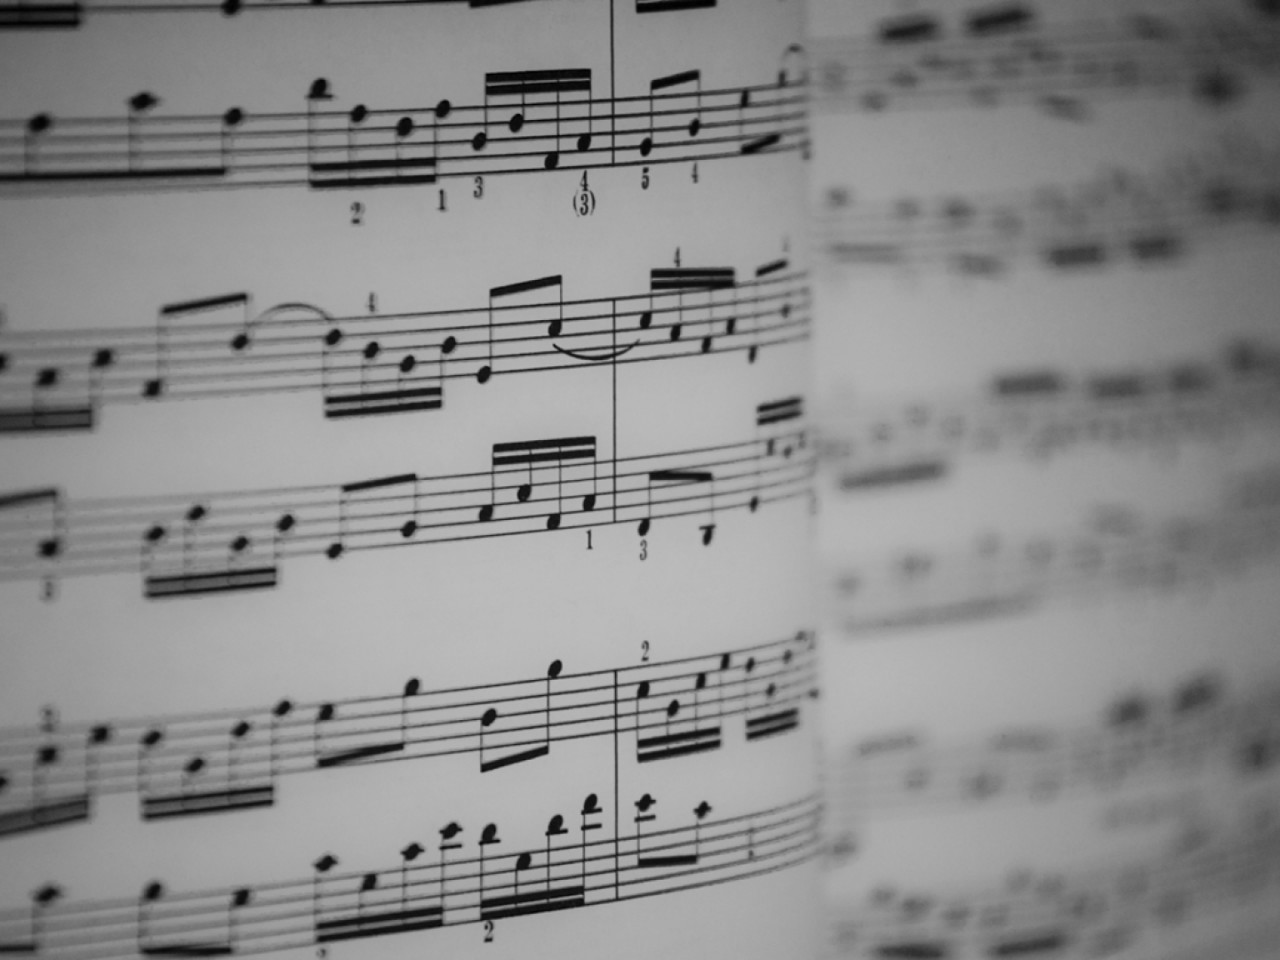 Sheet music wallpaper - HD Wallpapers